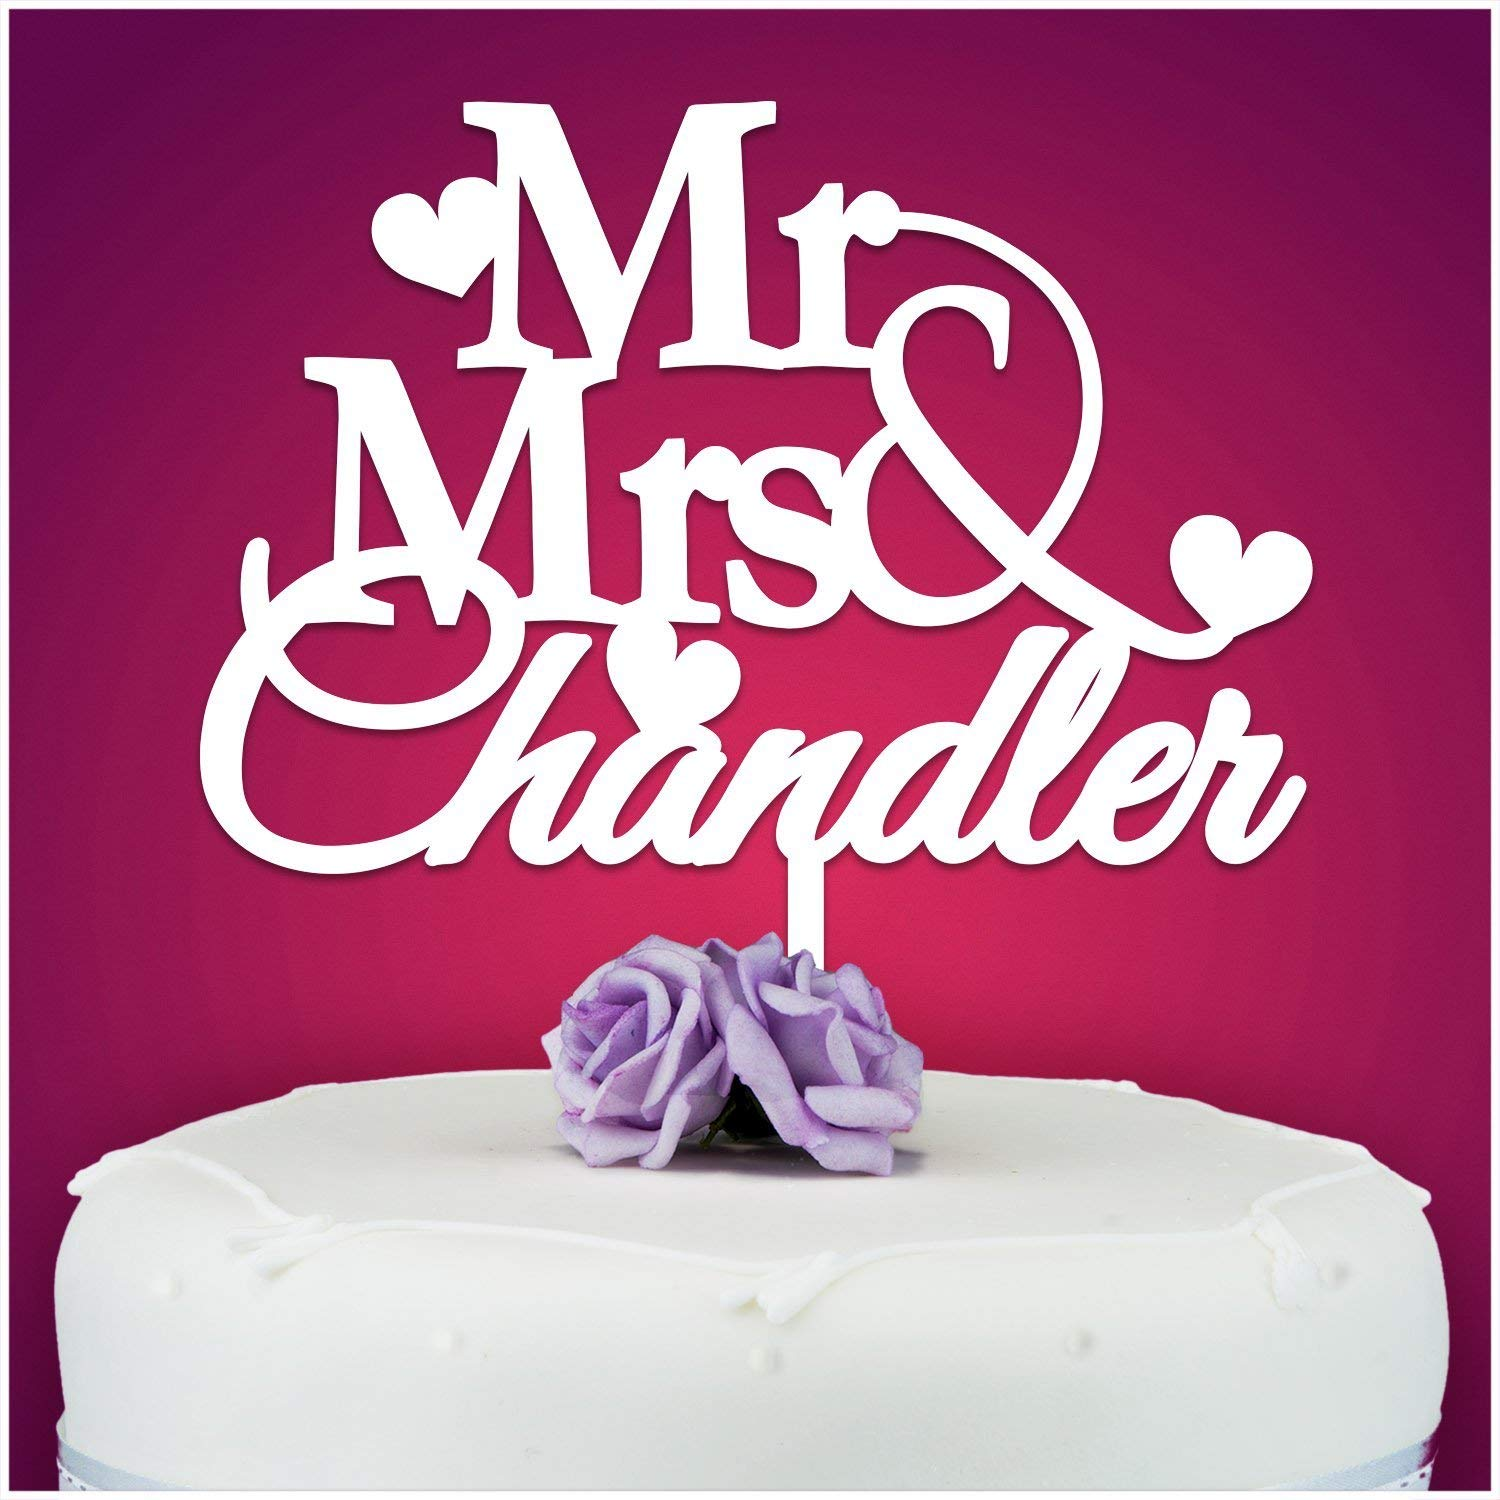 PERSONALISED Wedding/Anniversary Cake Topper Decoration ...